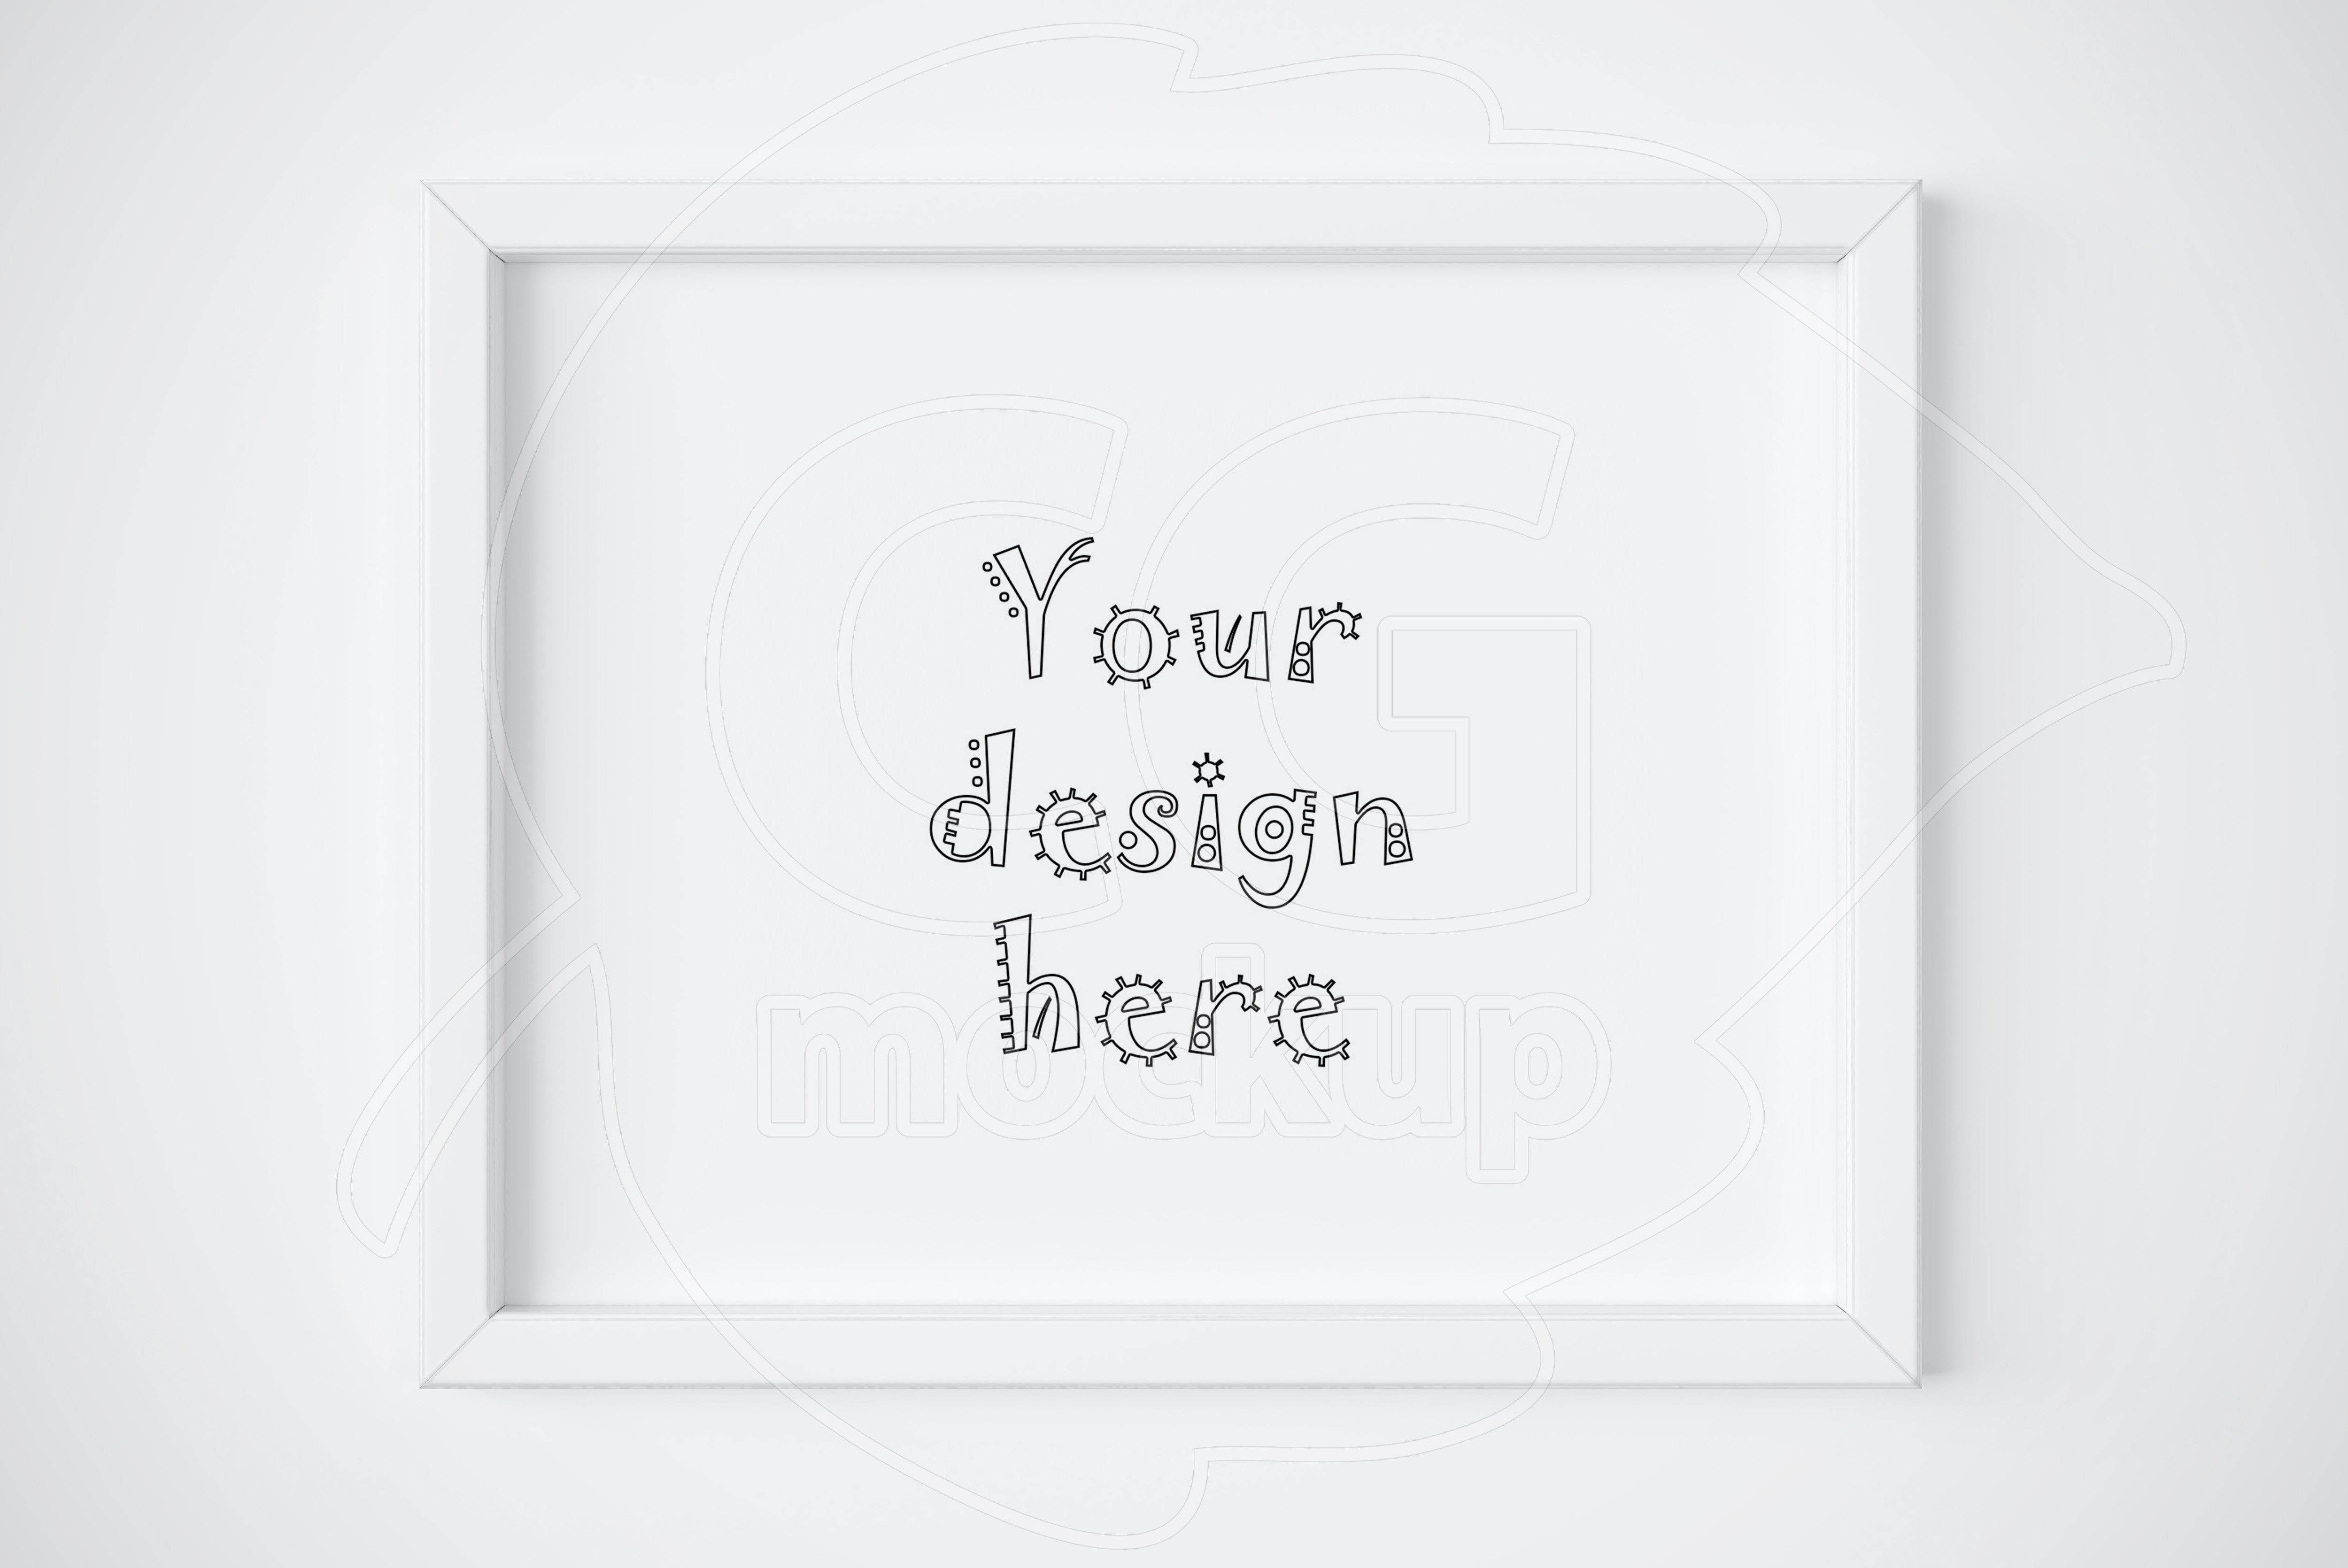 11x14 frame mockup Photos, Graphics, Fonts, Themes, Templates ...